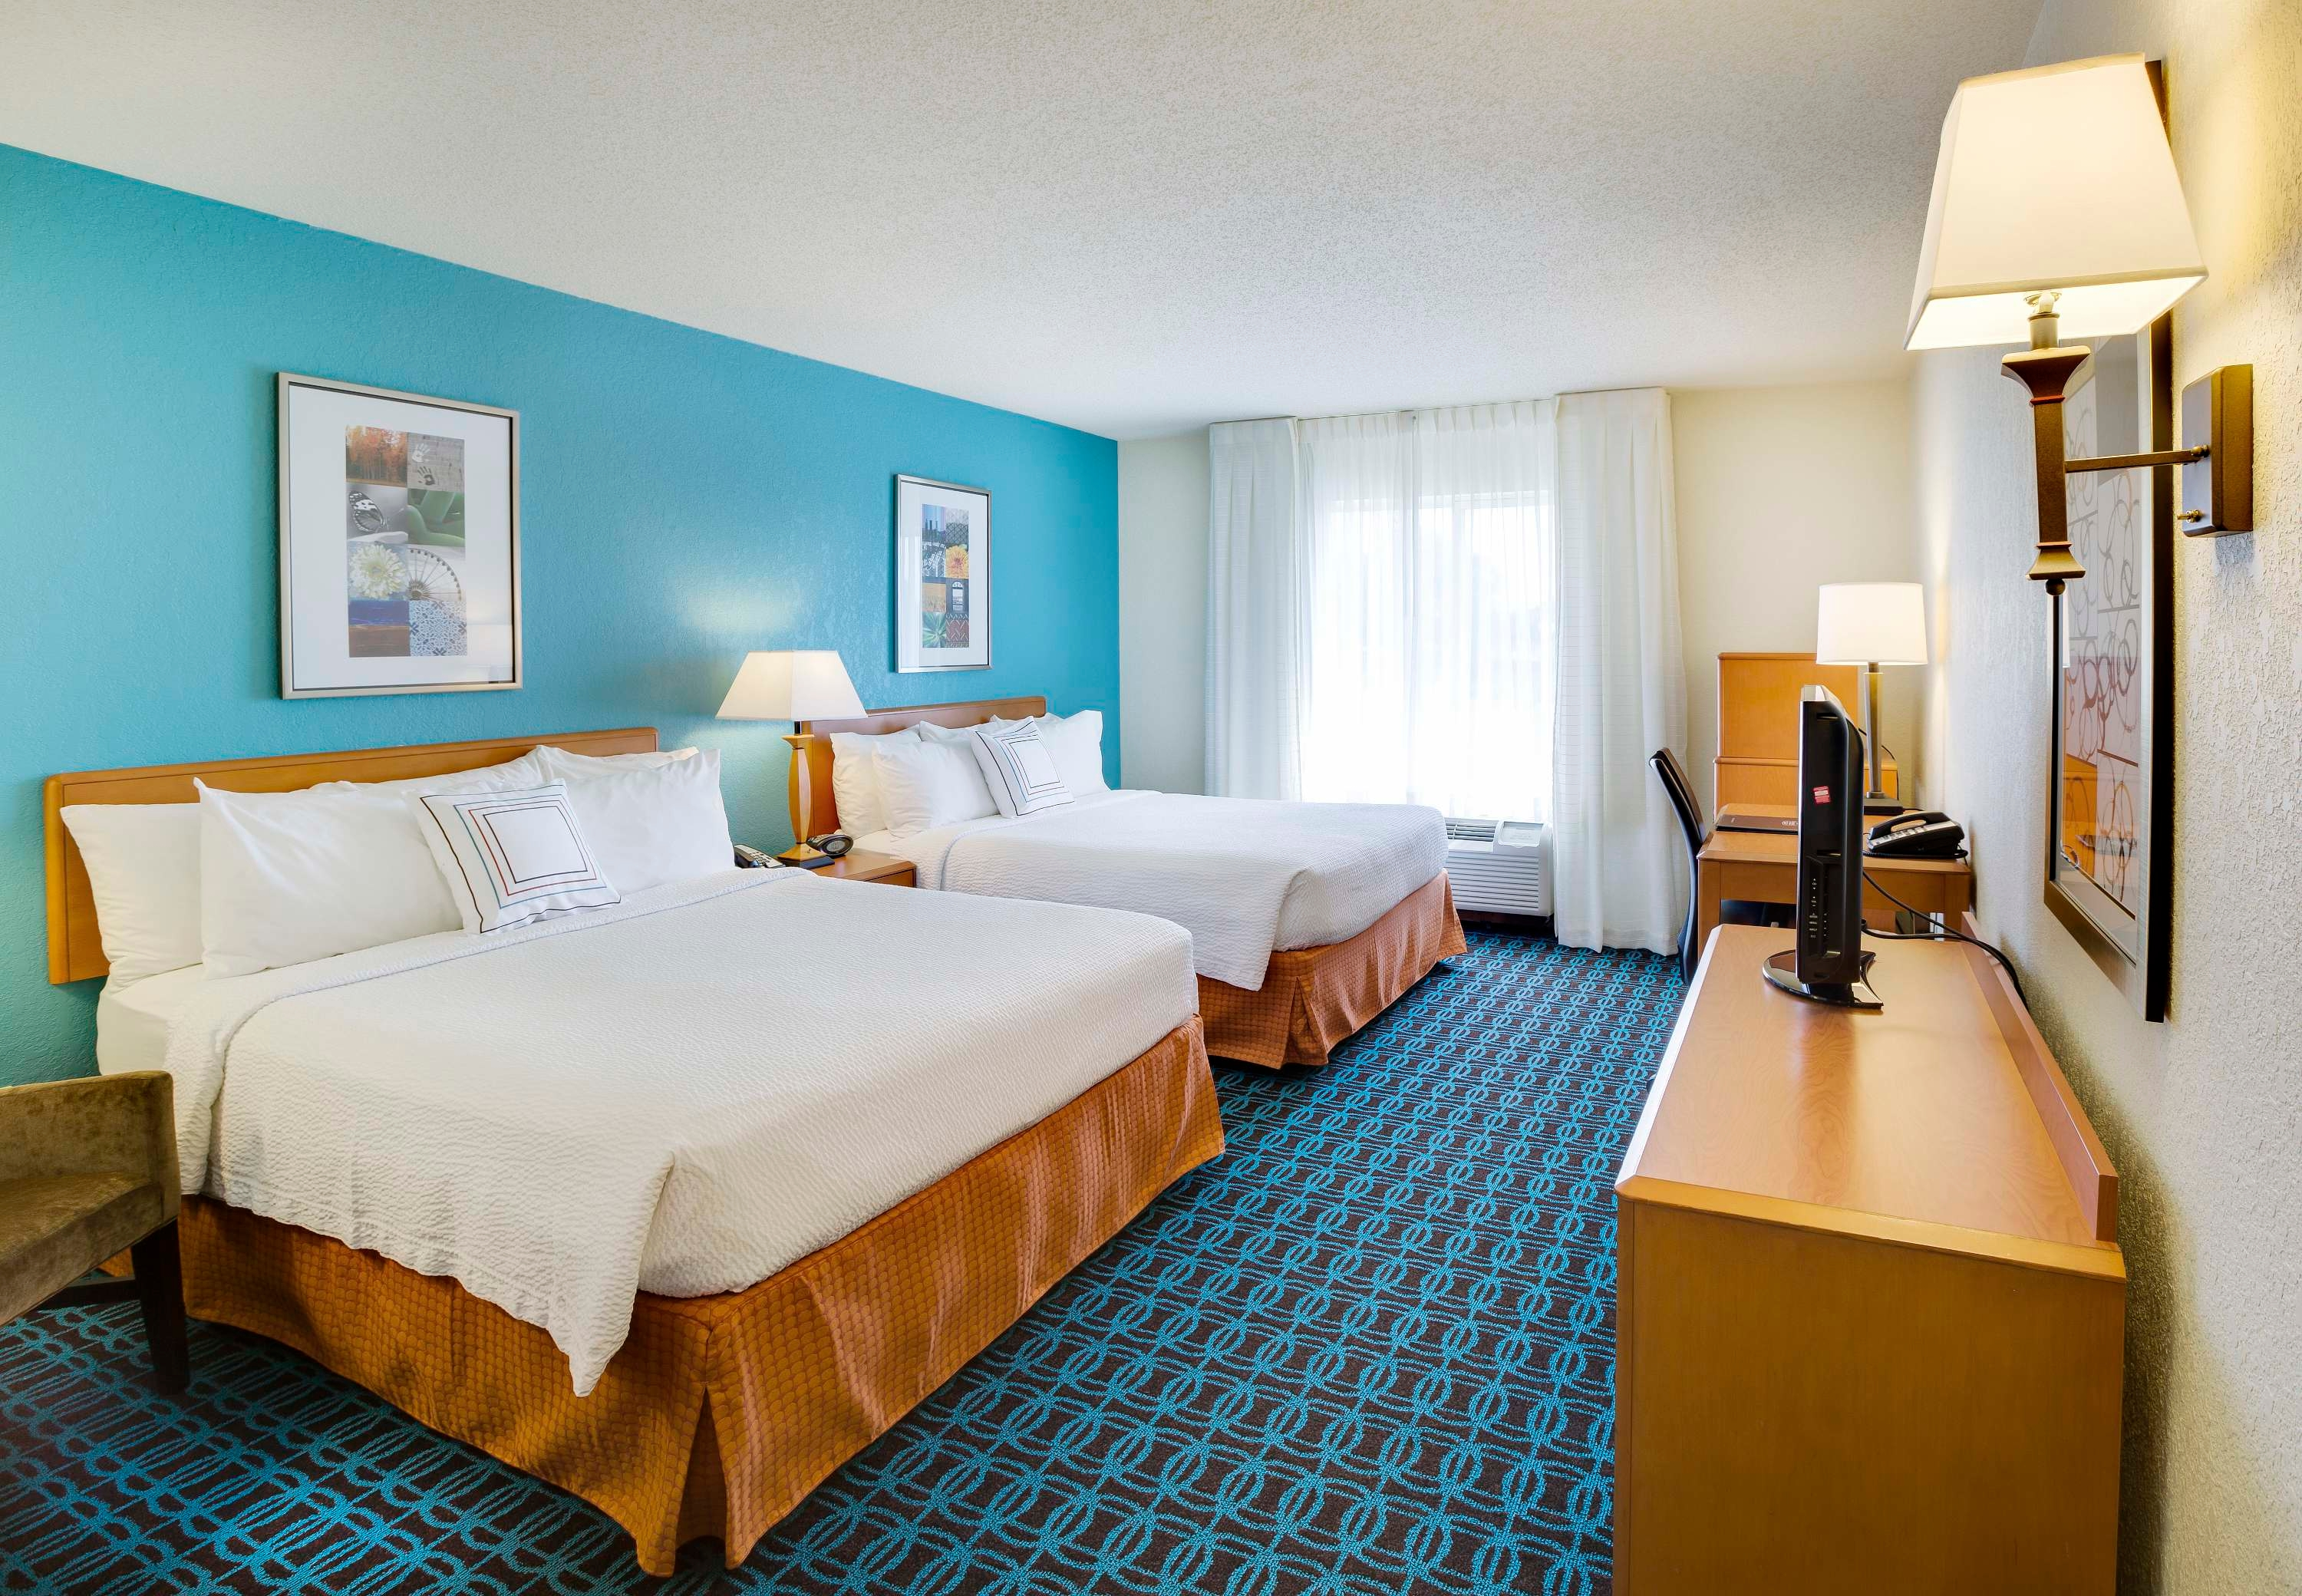 Fairfield Inn & Suites by Marriott South Hill I-85 image 2